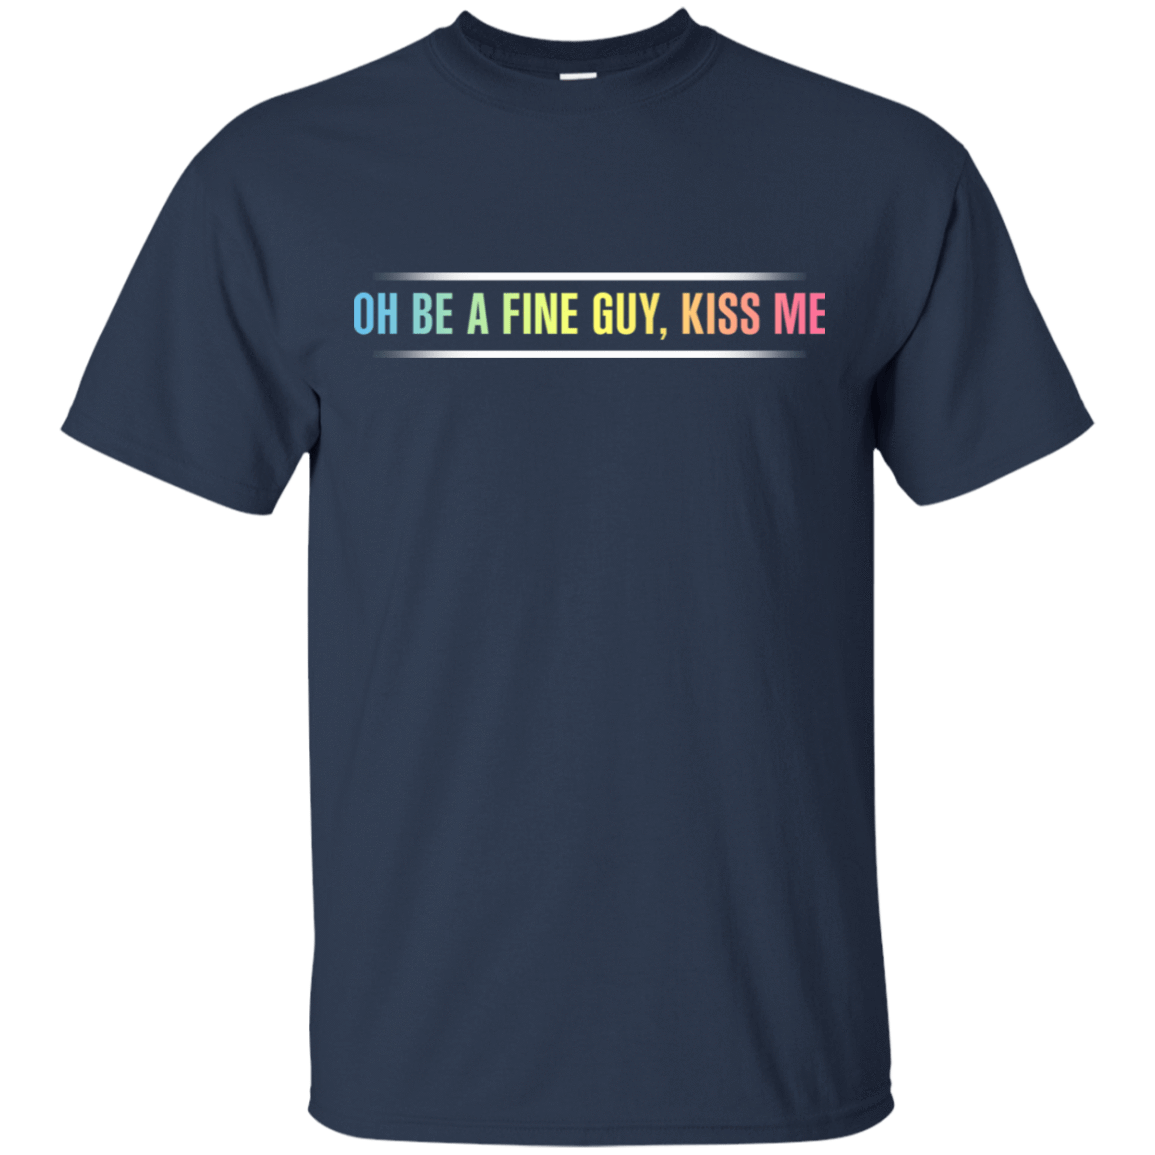 Oh Be A Fine Guy, Kiss Me 22-111-72956671-250 - Tee Ript